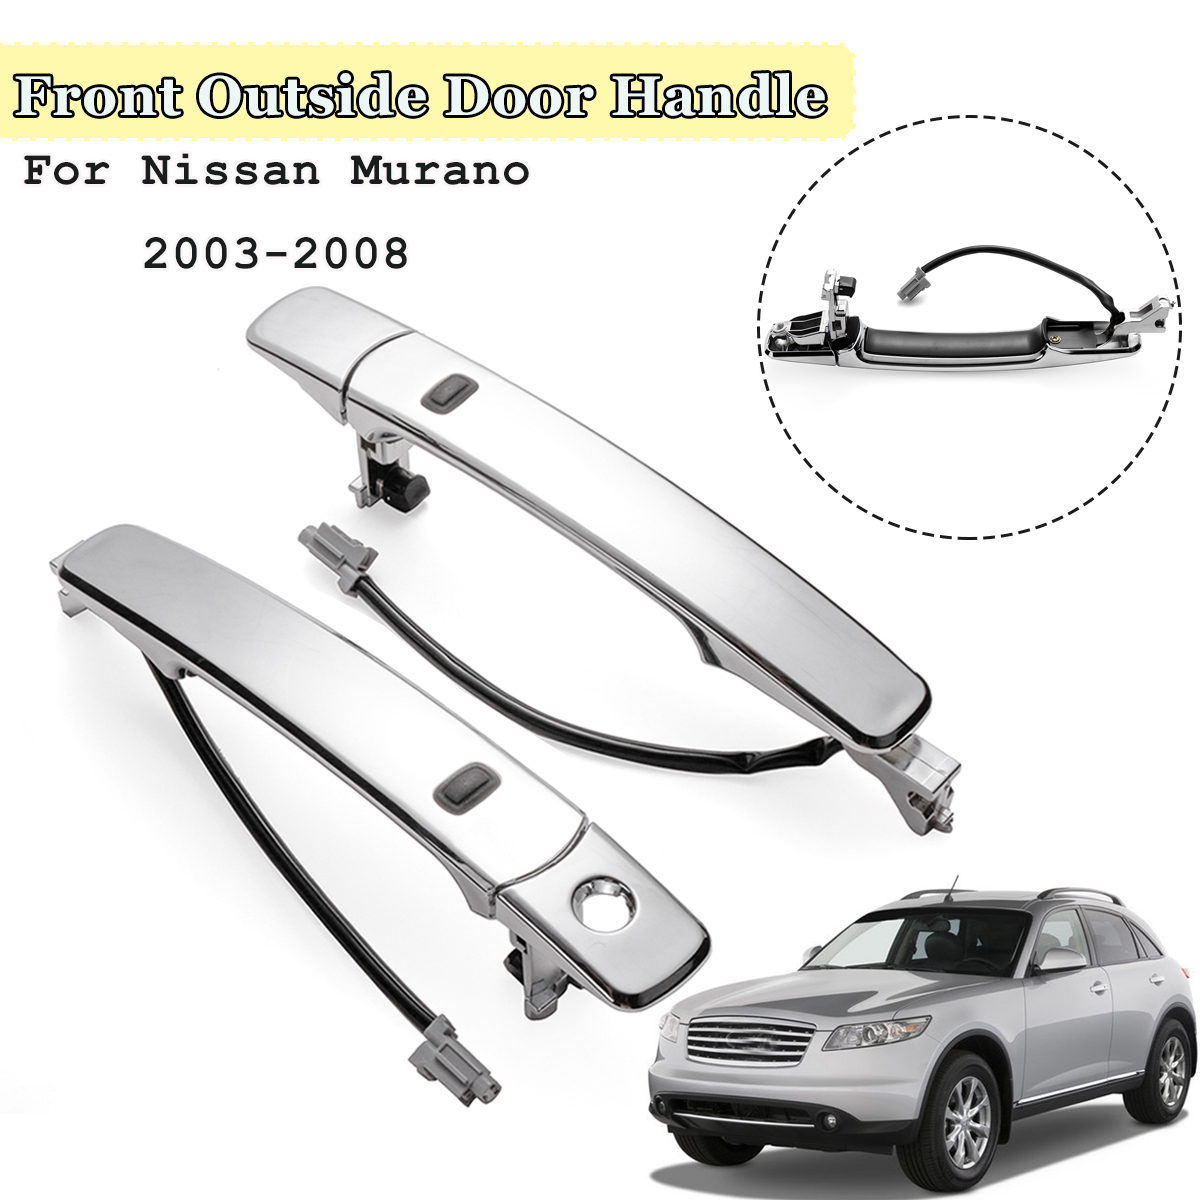 1pc front left right outside door handle smart entry for nissan murano 2003 2004 2005 2008 [ 1200 x 1200 Pixel ]